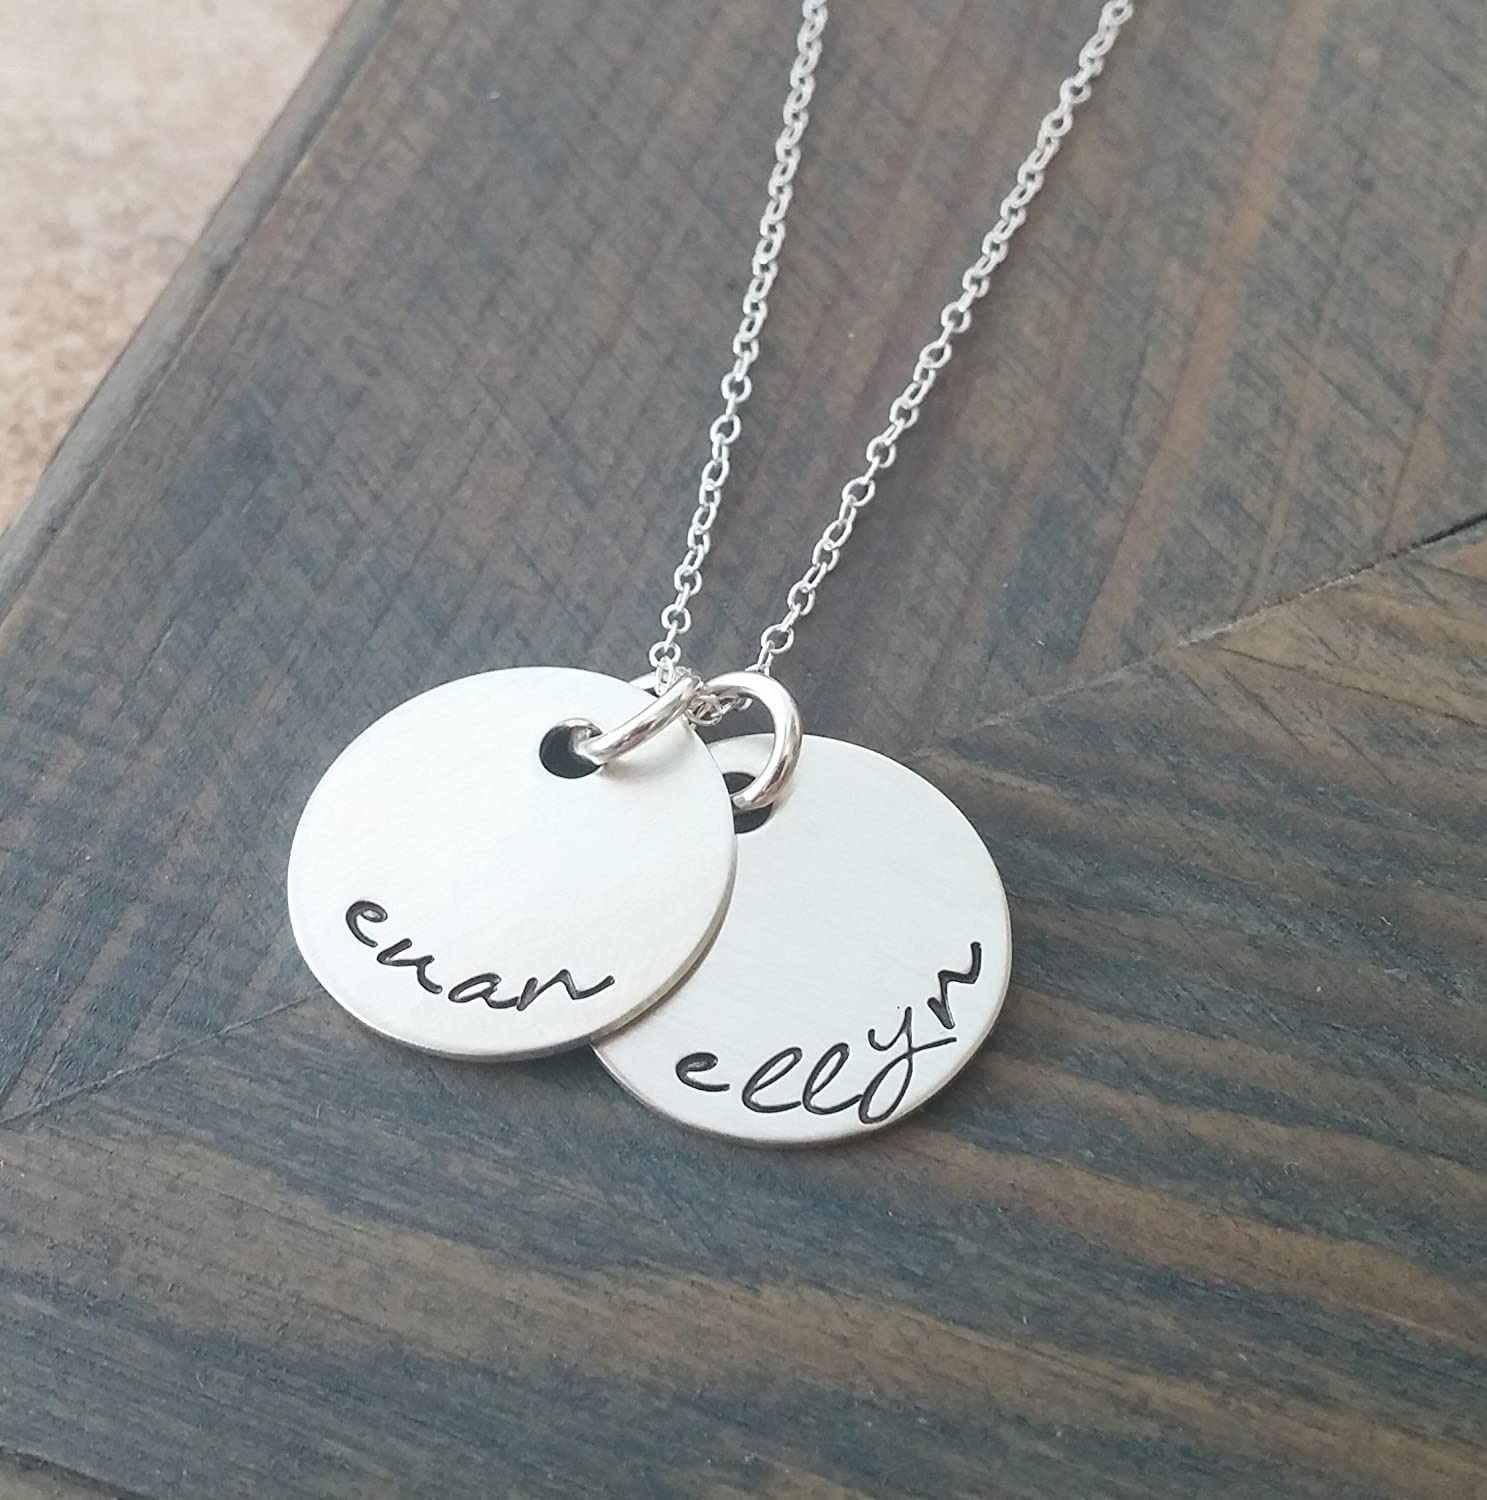 Hand Stamped Jewelry//Personalized Necklace//Necklace with Kids Names//Sterling Silver Disc Necklace